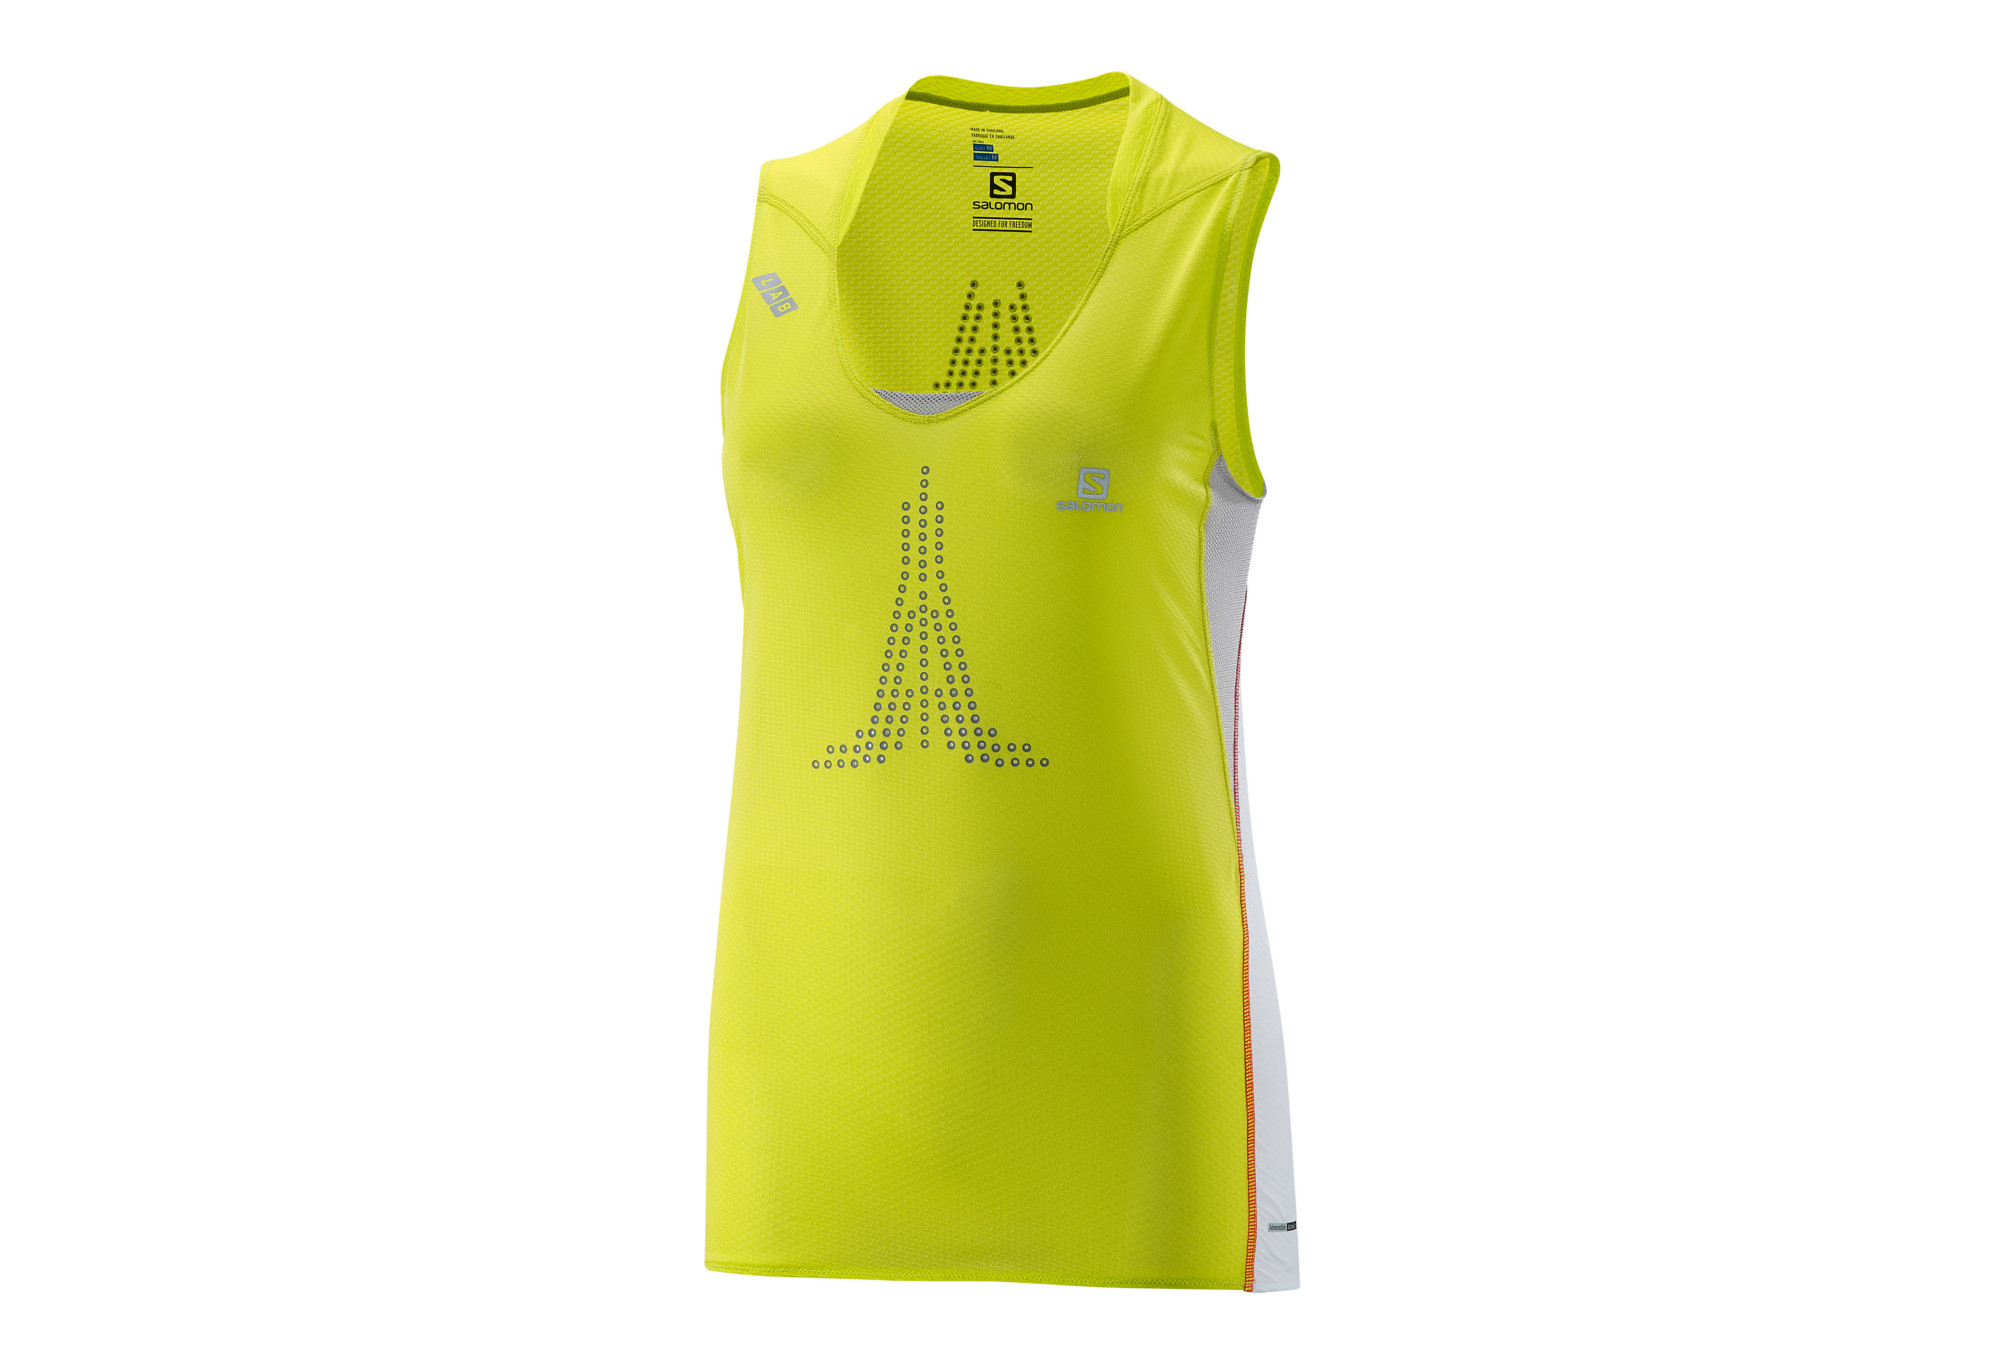 detailed look b6cf6 6461d SALOMON Jersey S-LAB SENSE TANK Yellow White Women